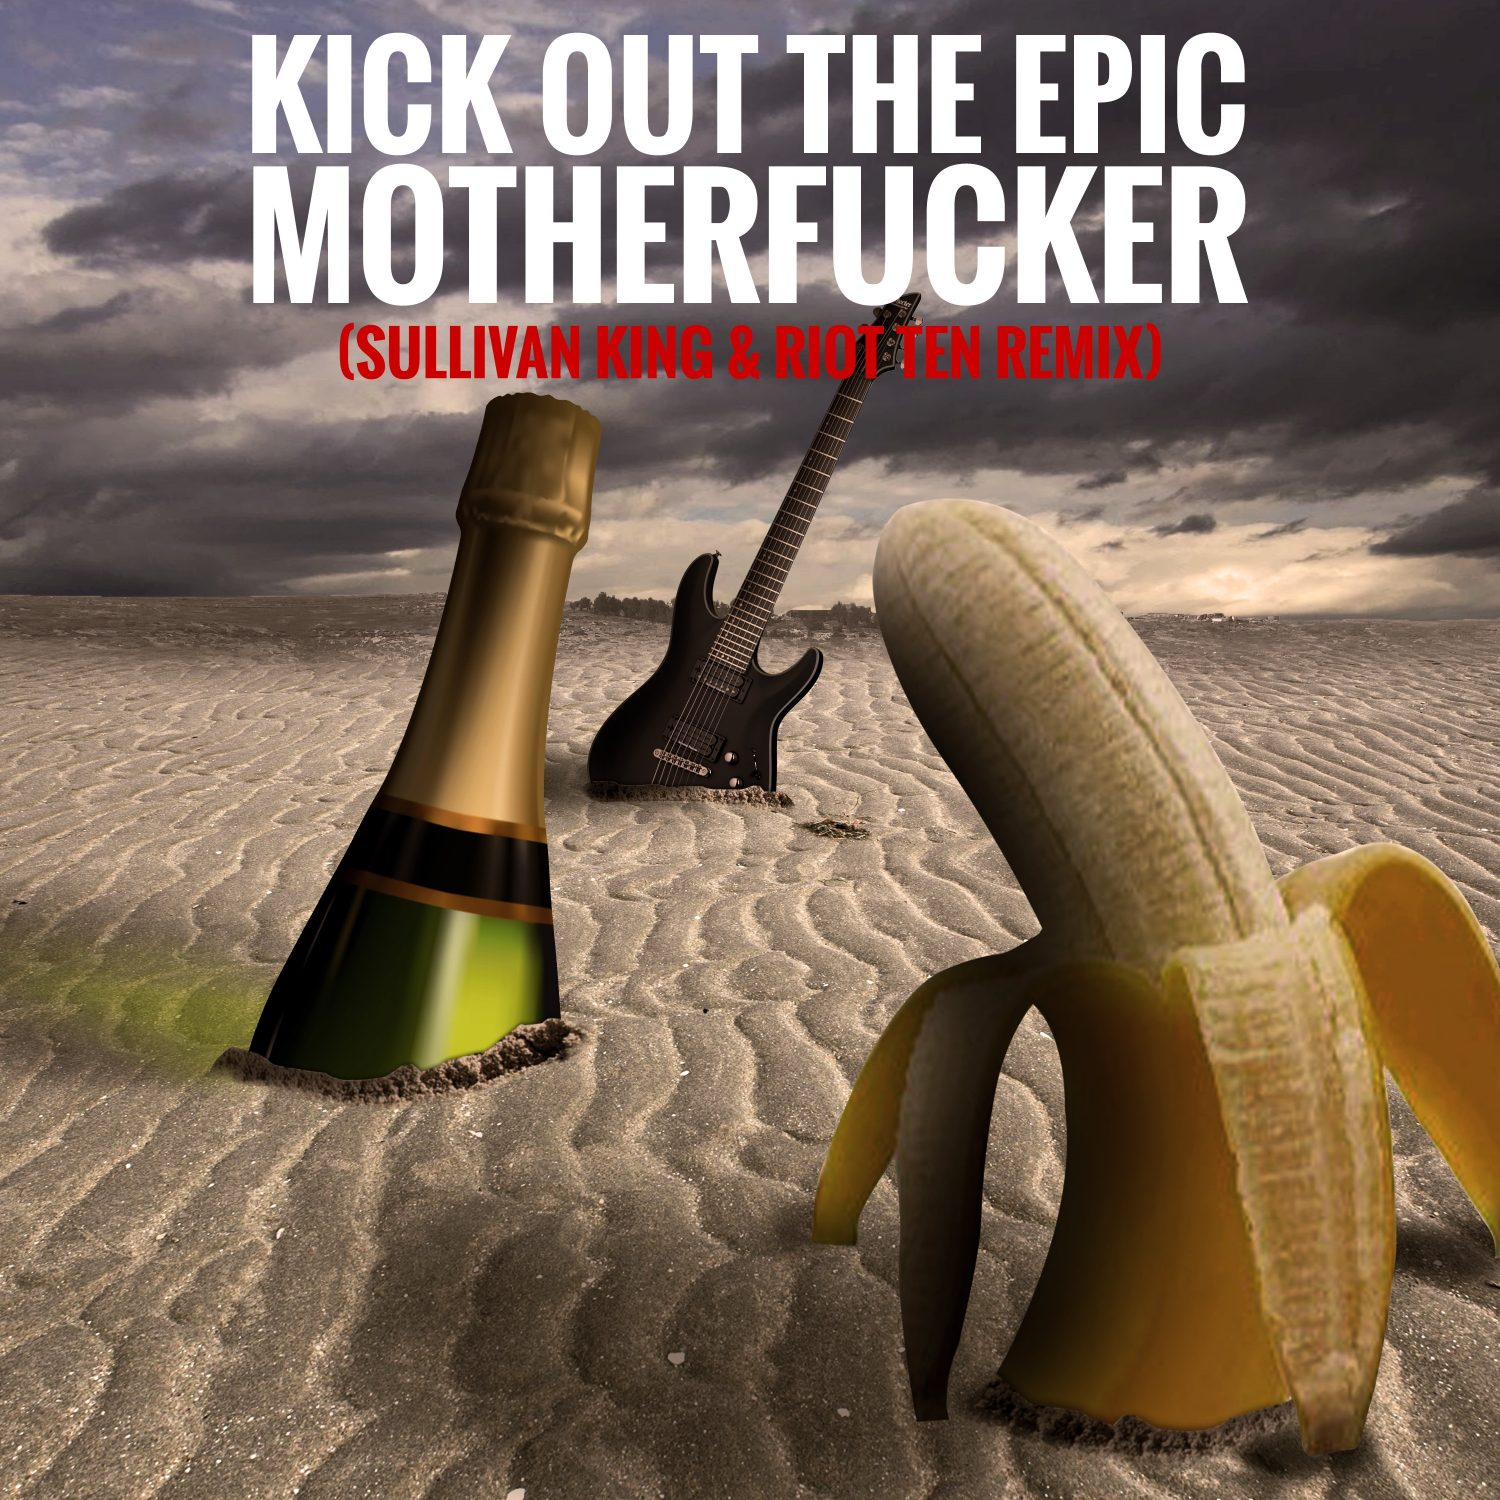 kick-out-the-epic-motherfucker-riot-ten-sullivan-king-remix